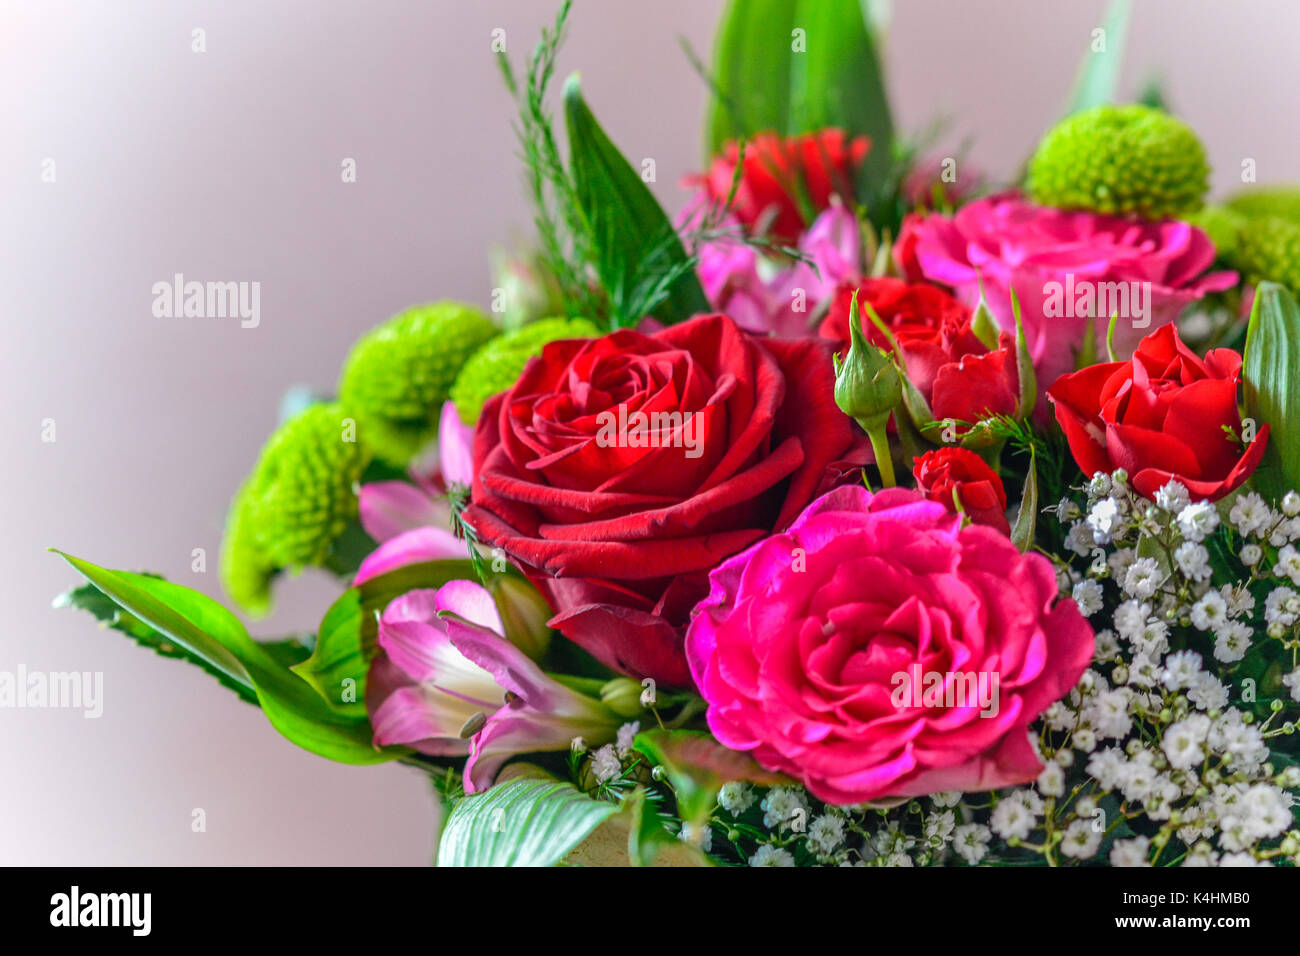 Bunch Of Flowers Stock Photos Bunch Of Flowers Stock Images Alamy